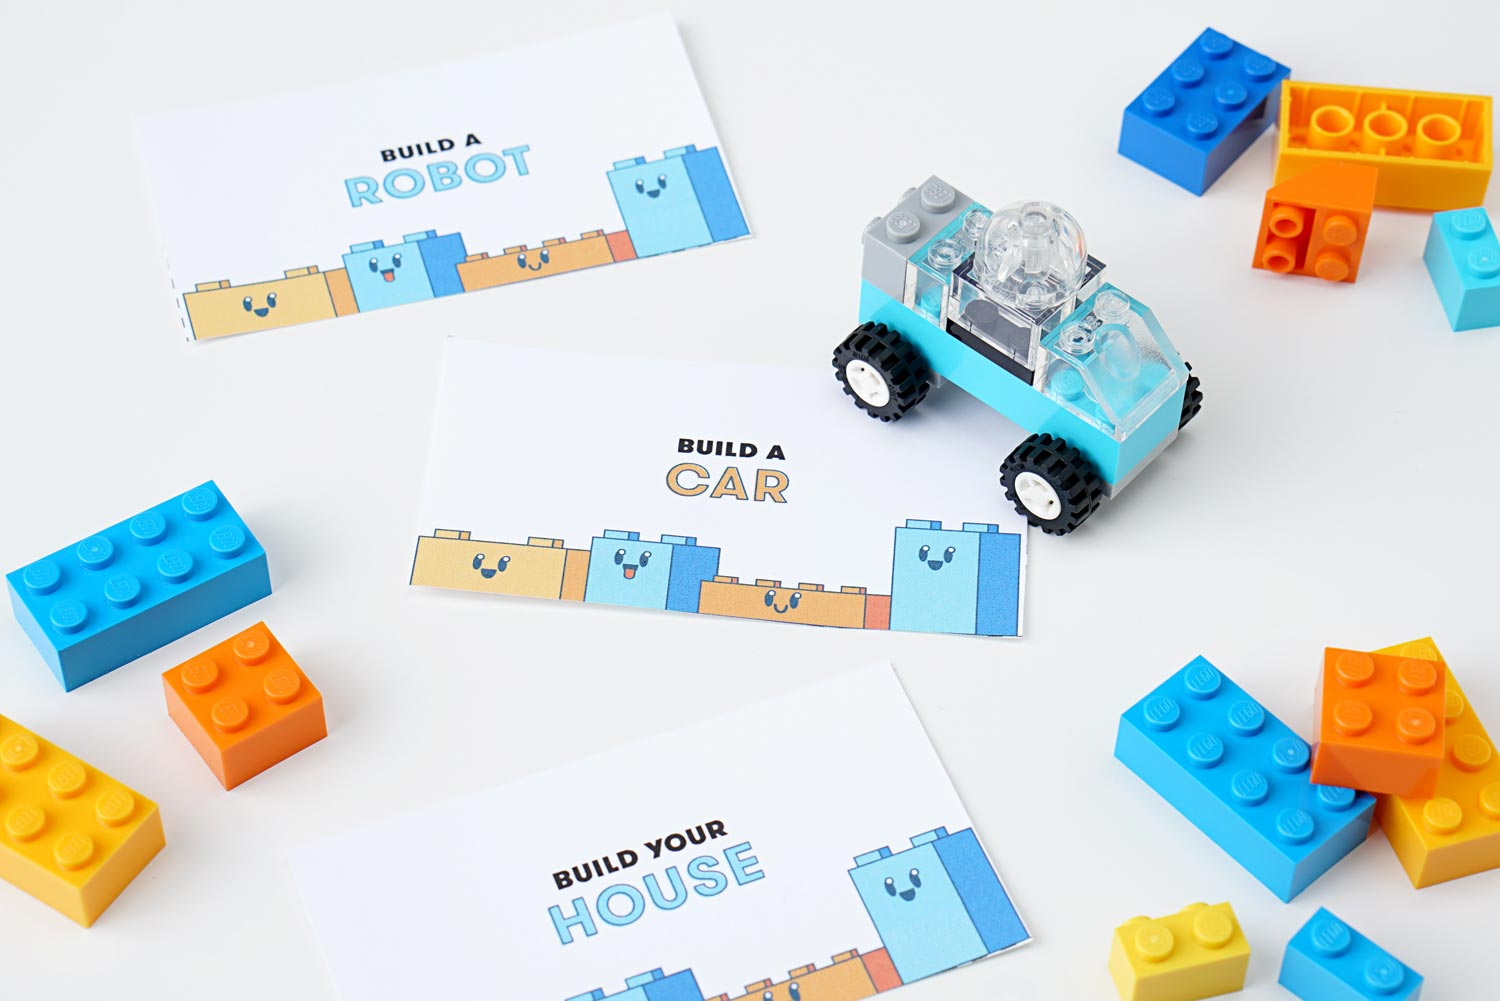 LEGO building challenge flashcards